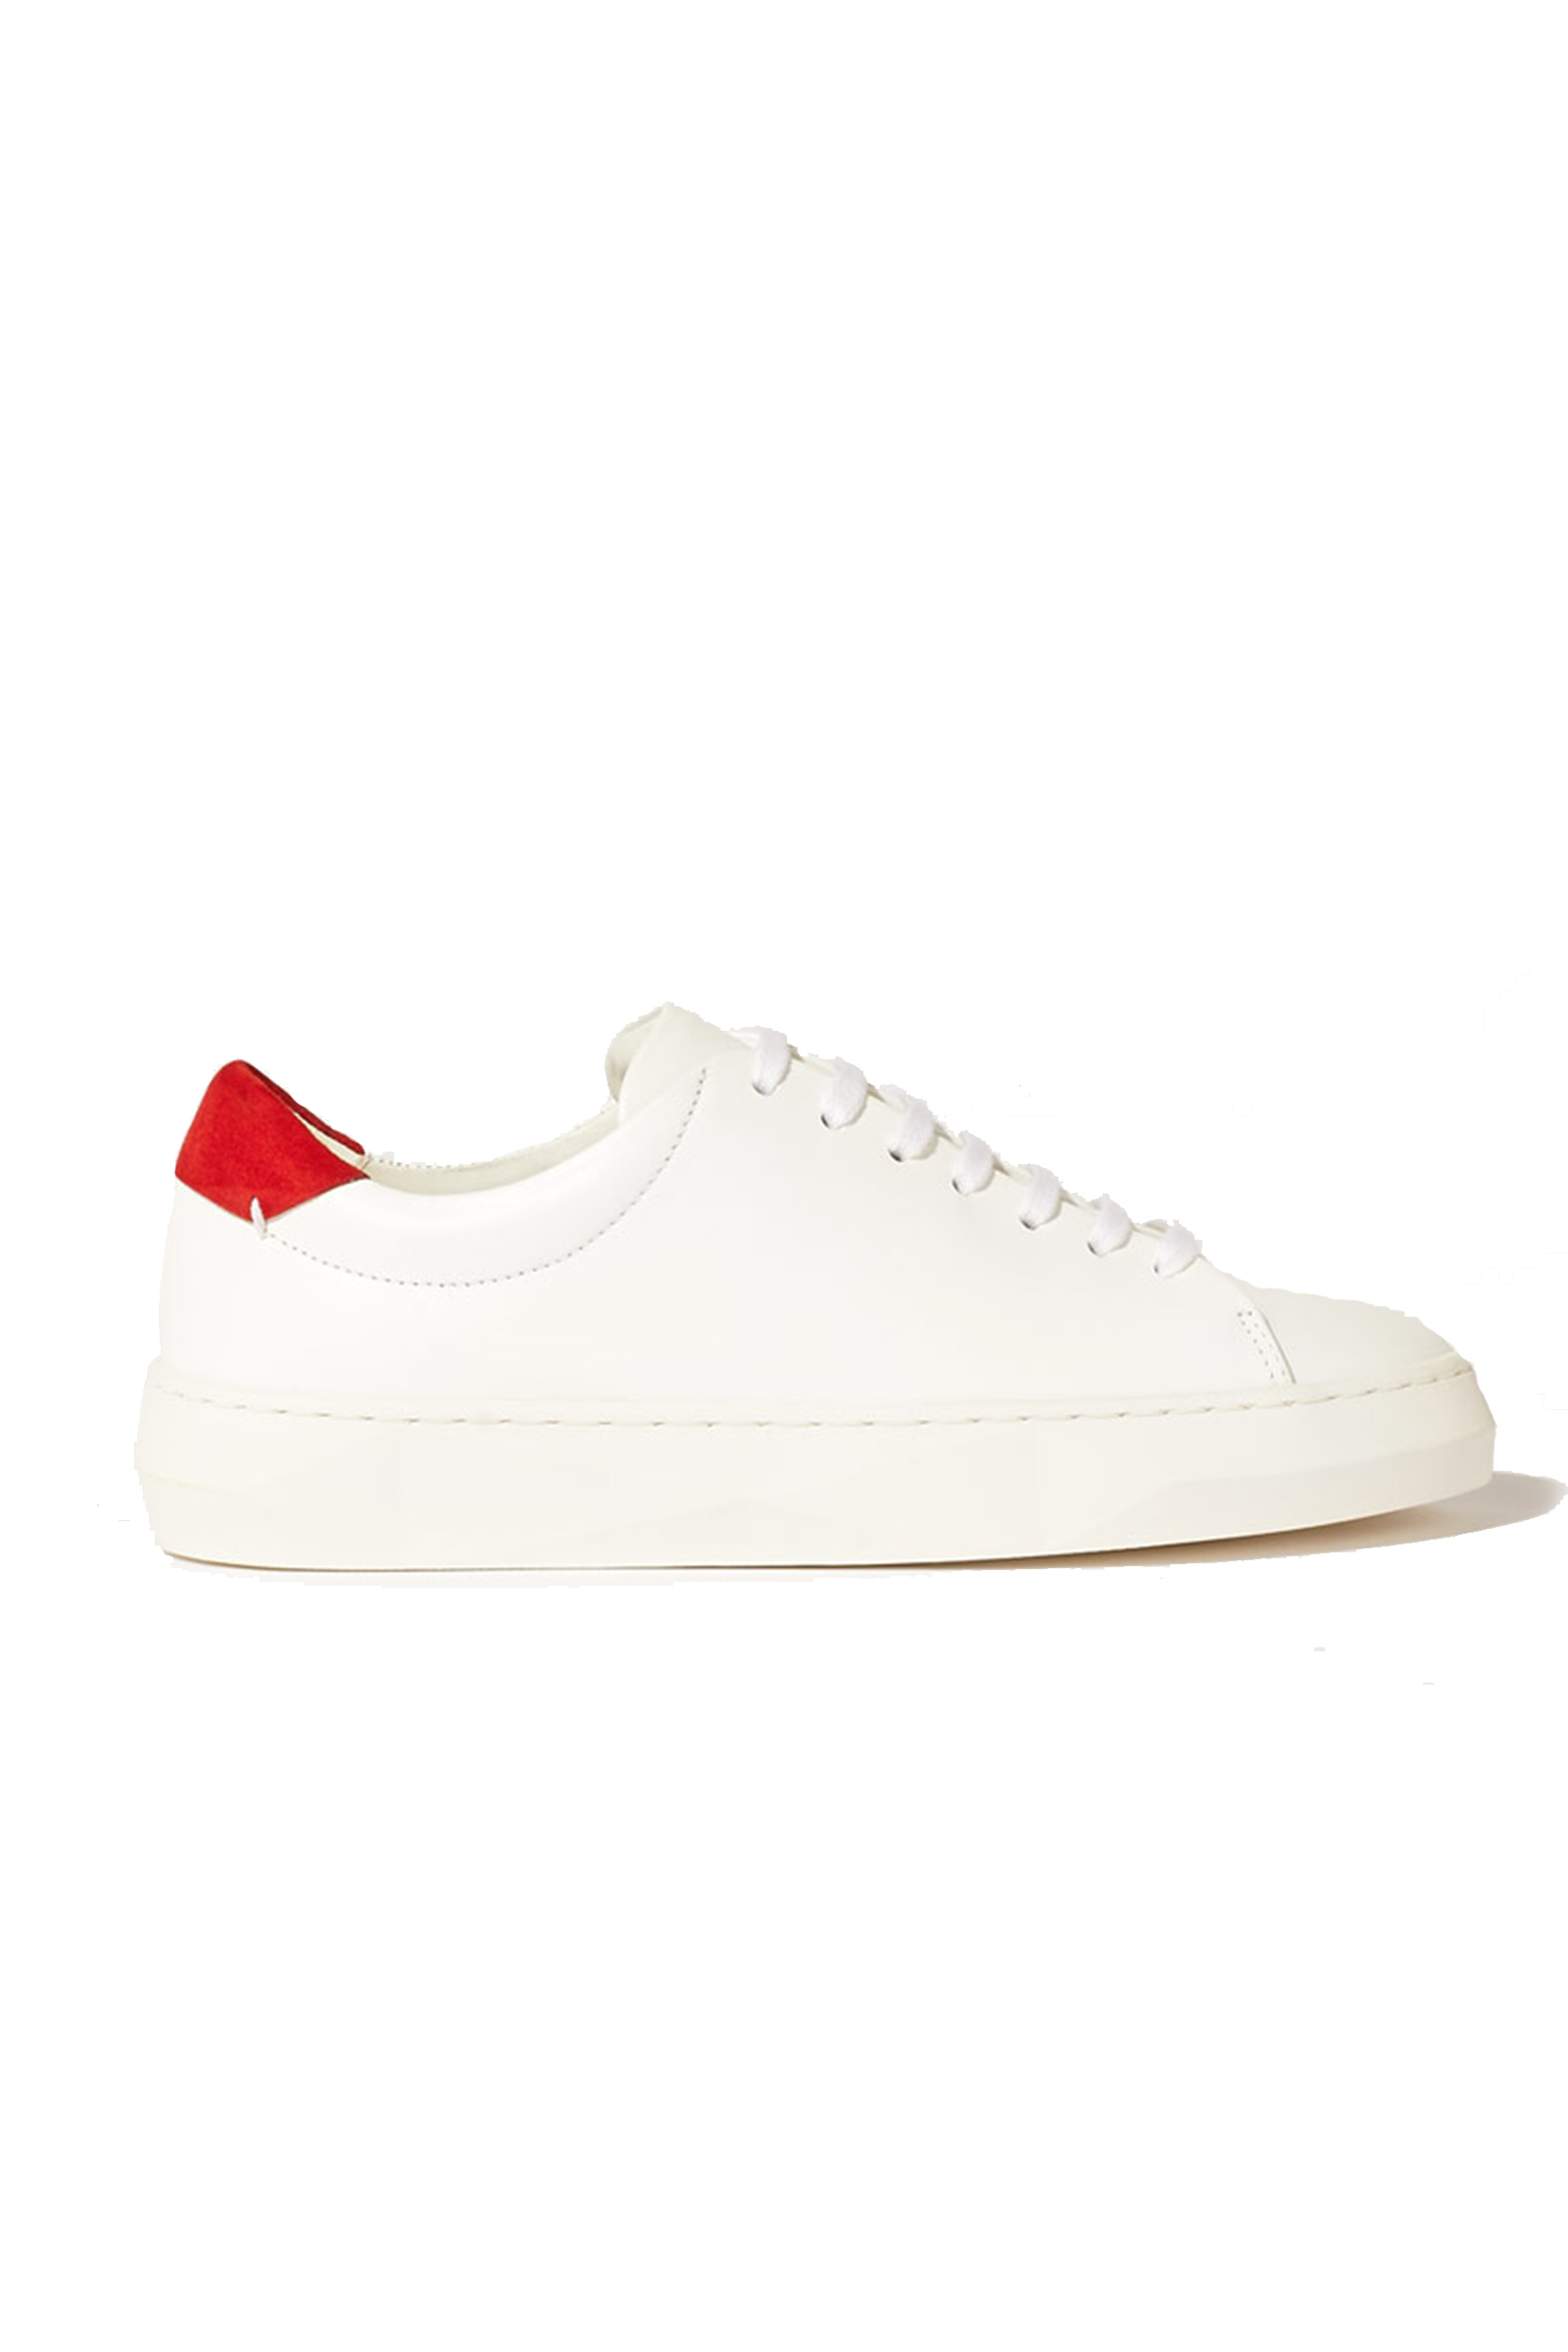 Buy Jigsaw Margot Leather Trainers in